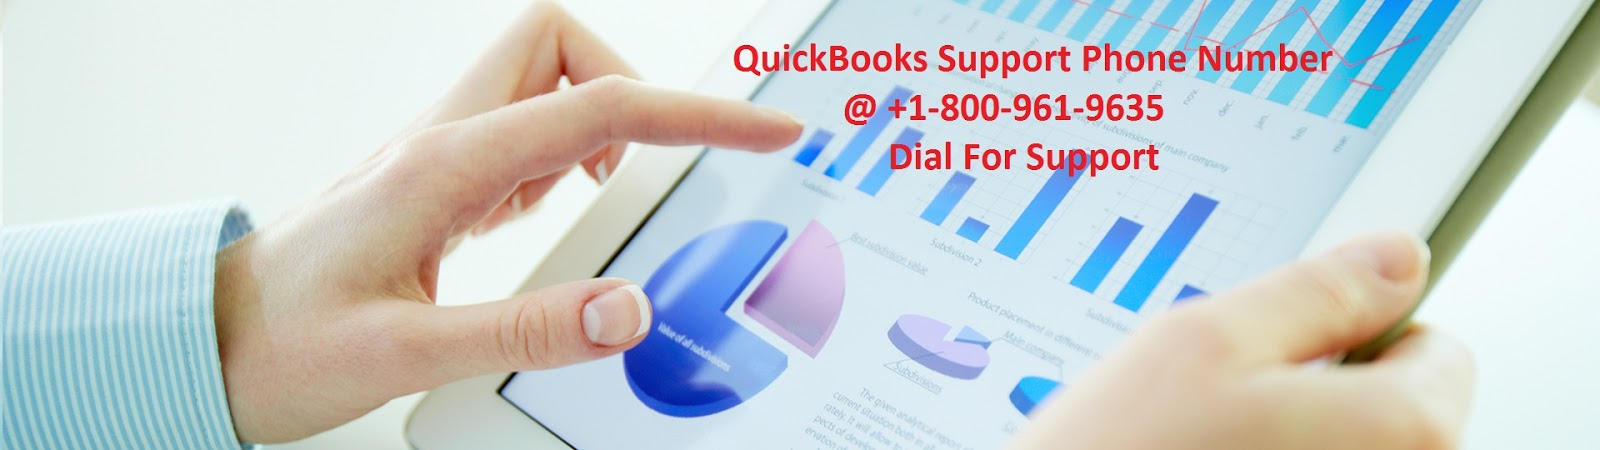 How Does QuickBooks assist all the users from around the world?